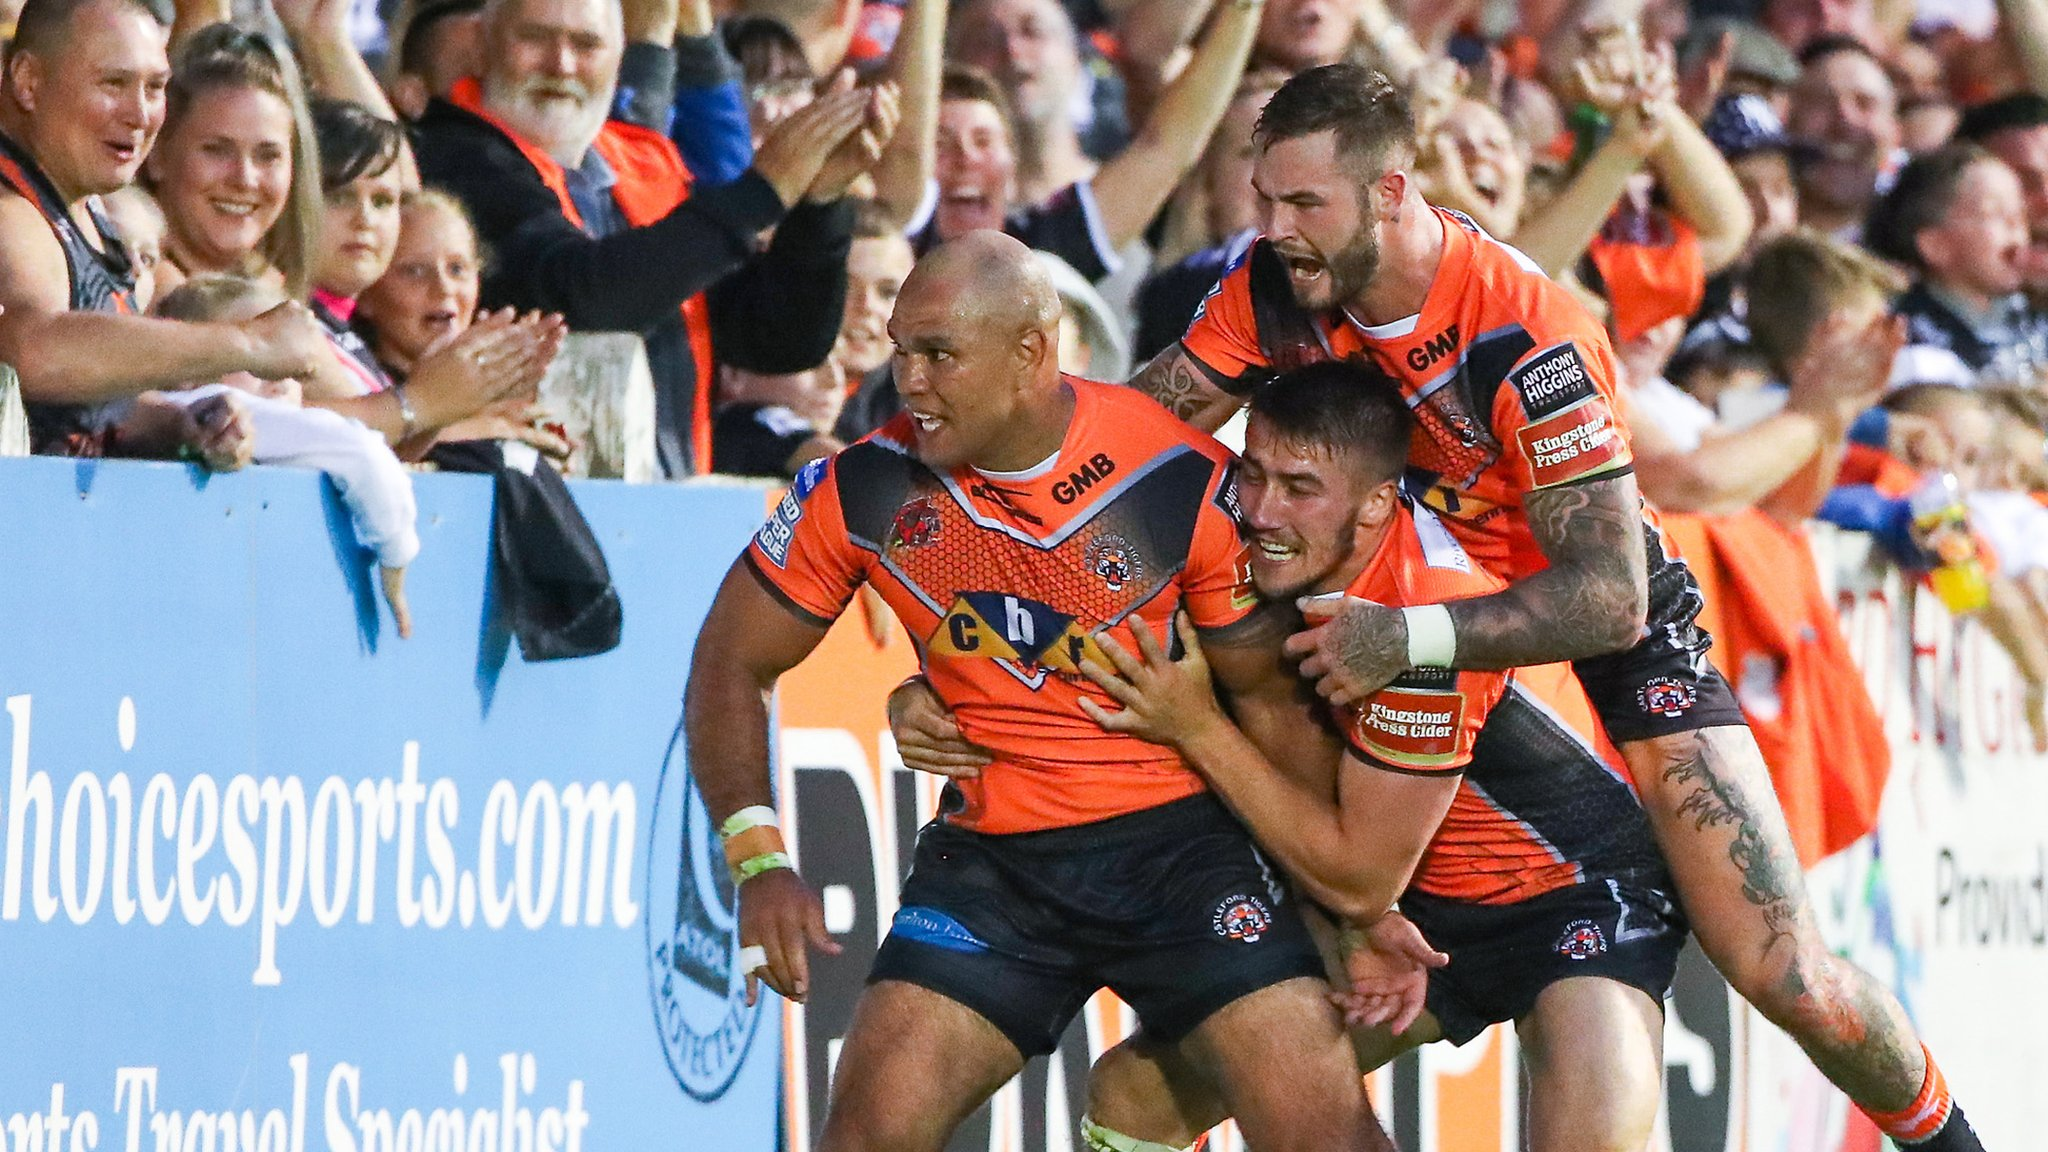 Webster scores four tries as Castleford clinch League Leaders' Shield